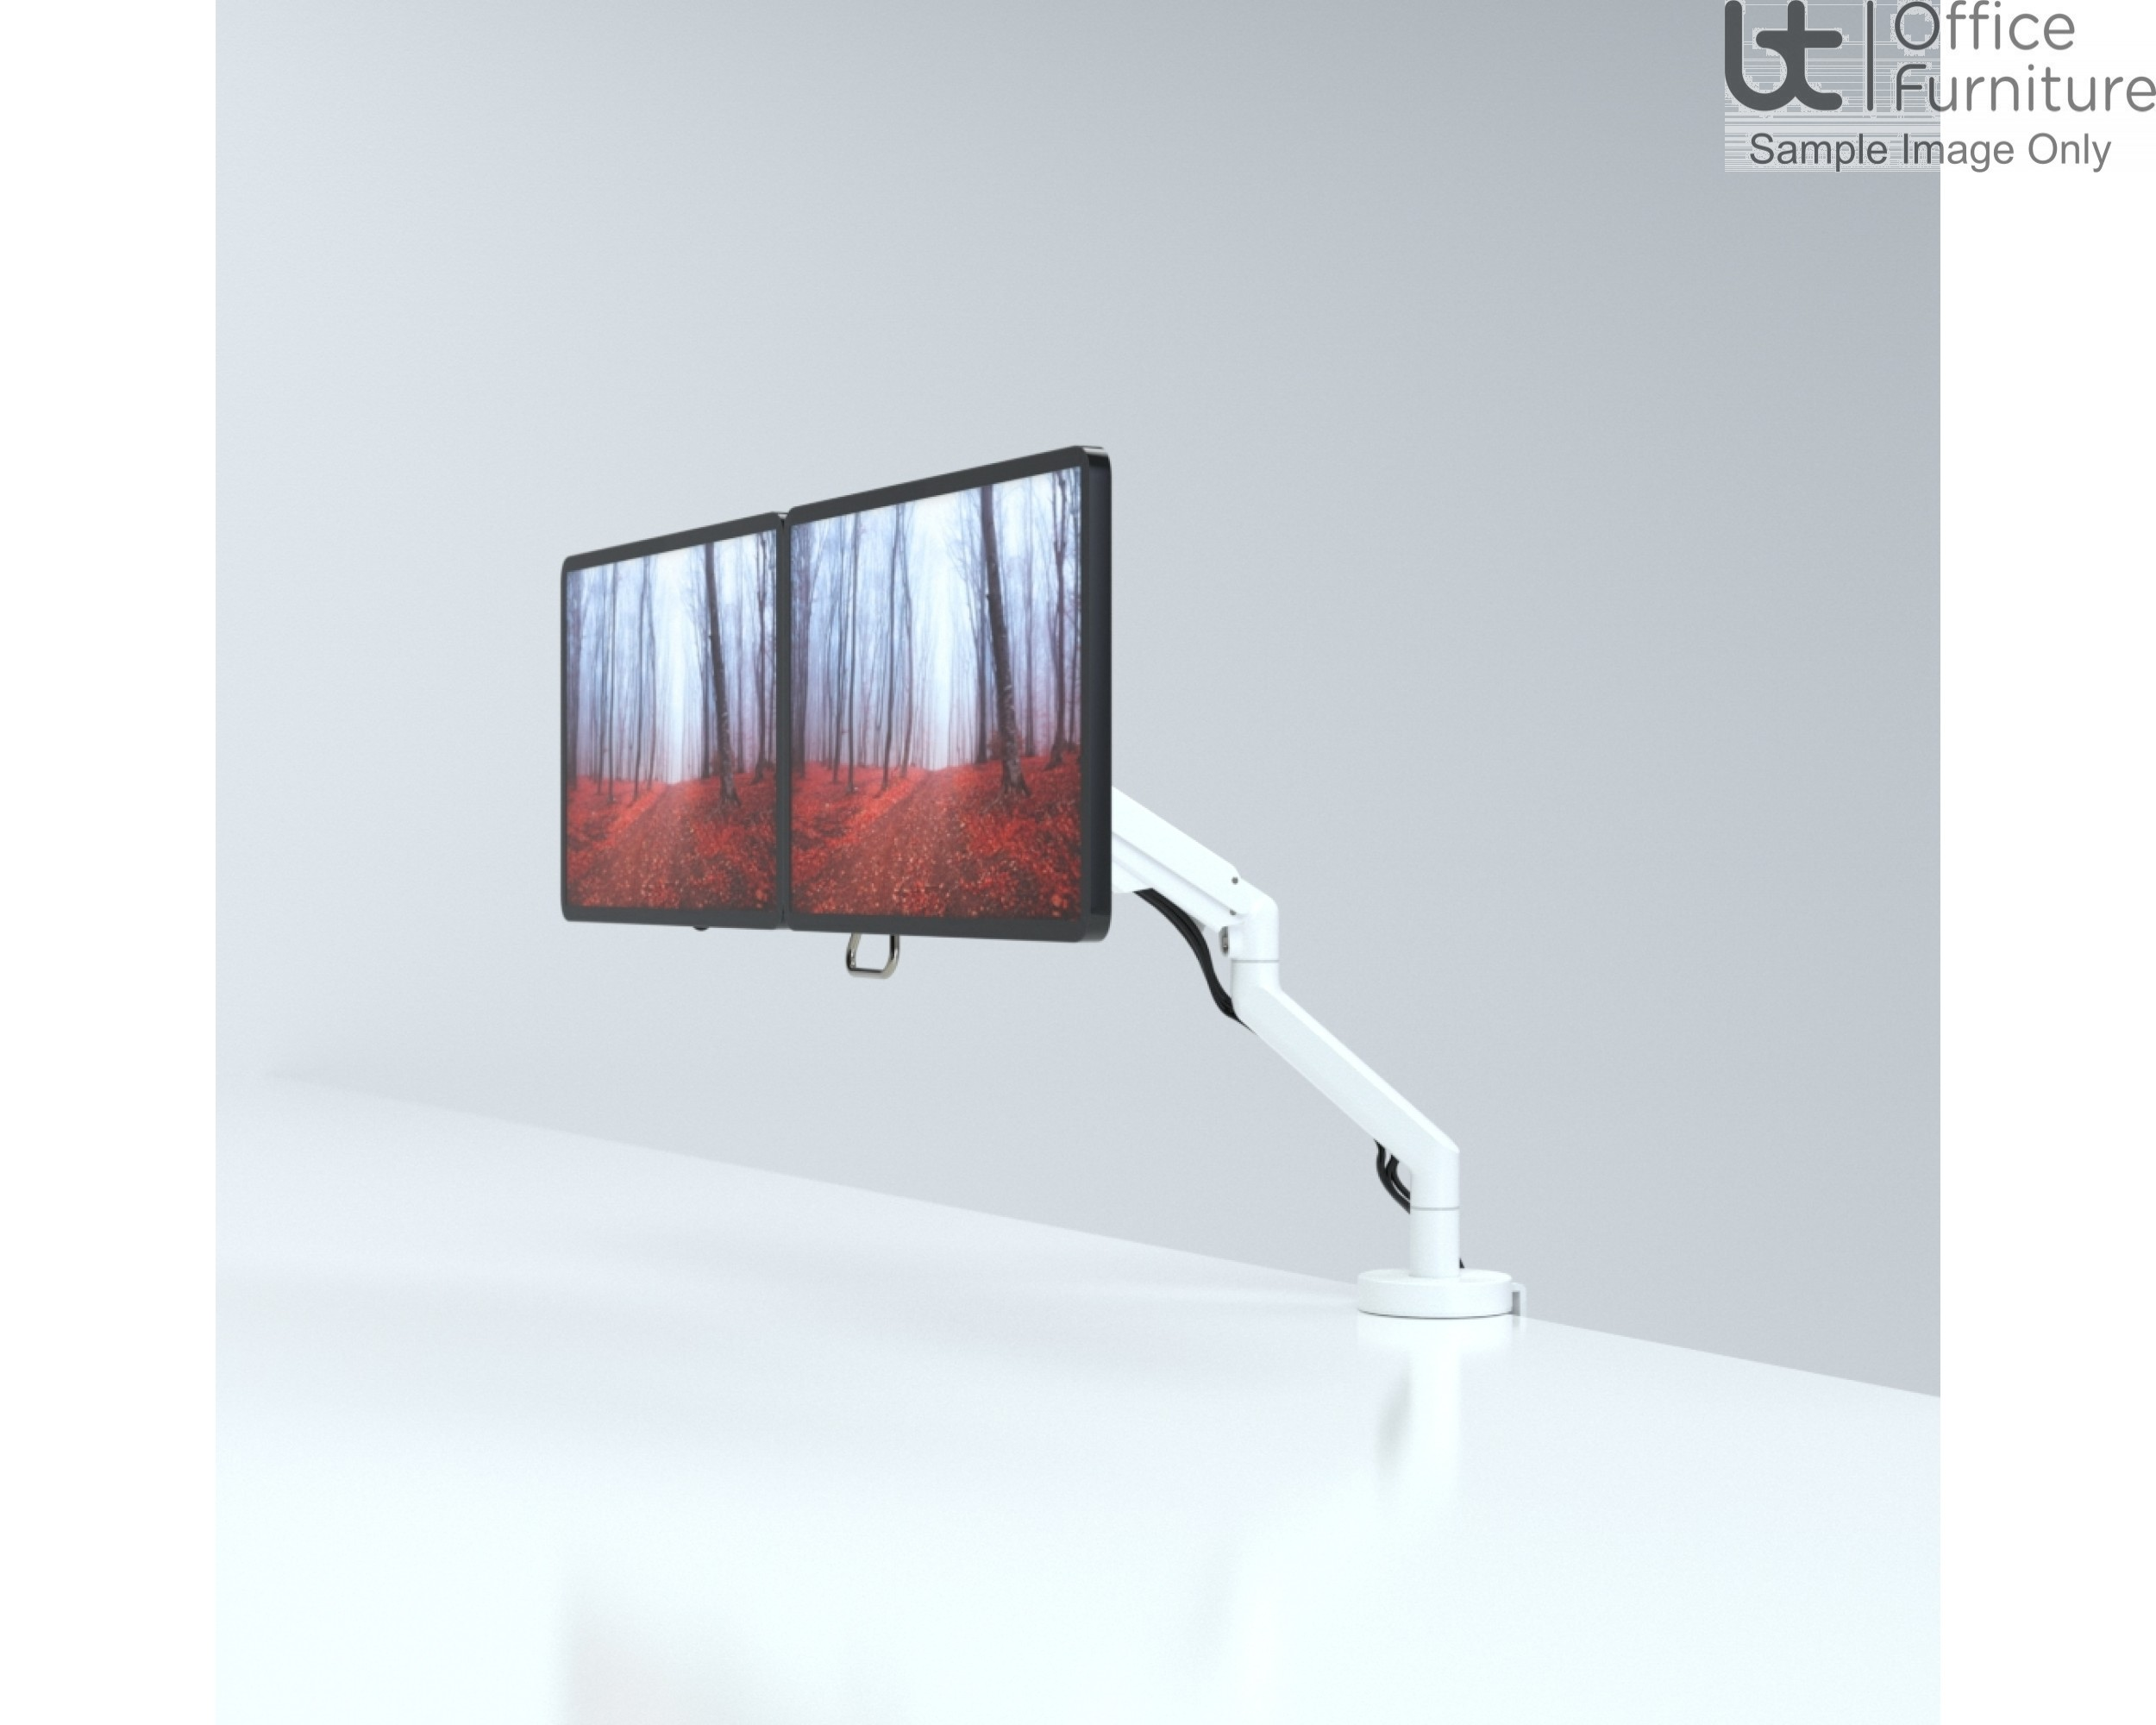 Reach Plus Dual Gas Assisted Monitor Arm - (6KG to 15KG Monitor) - Quick Release VESA